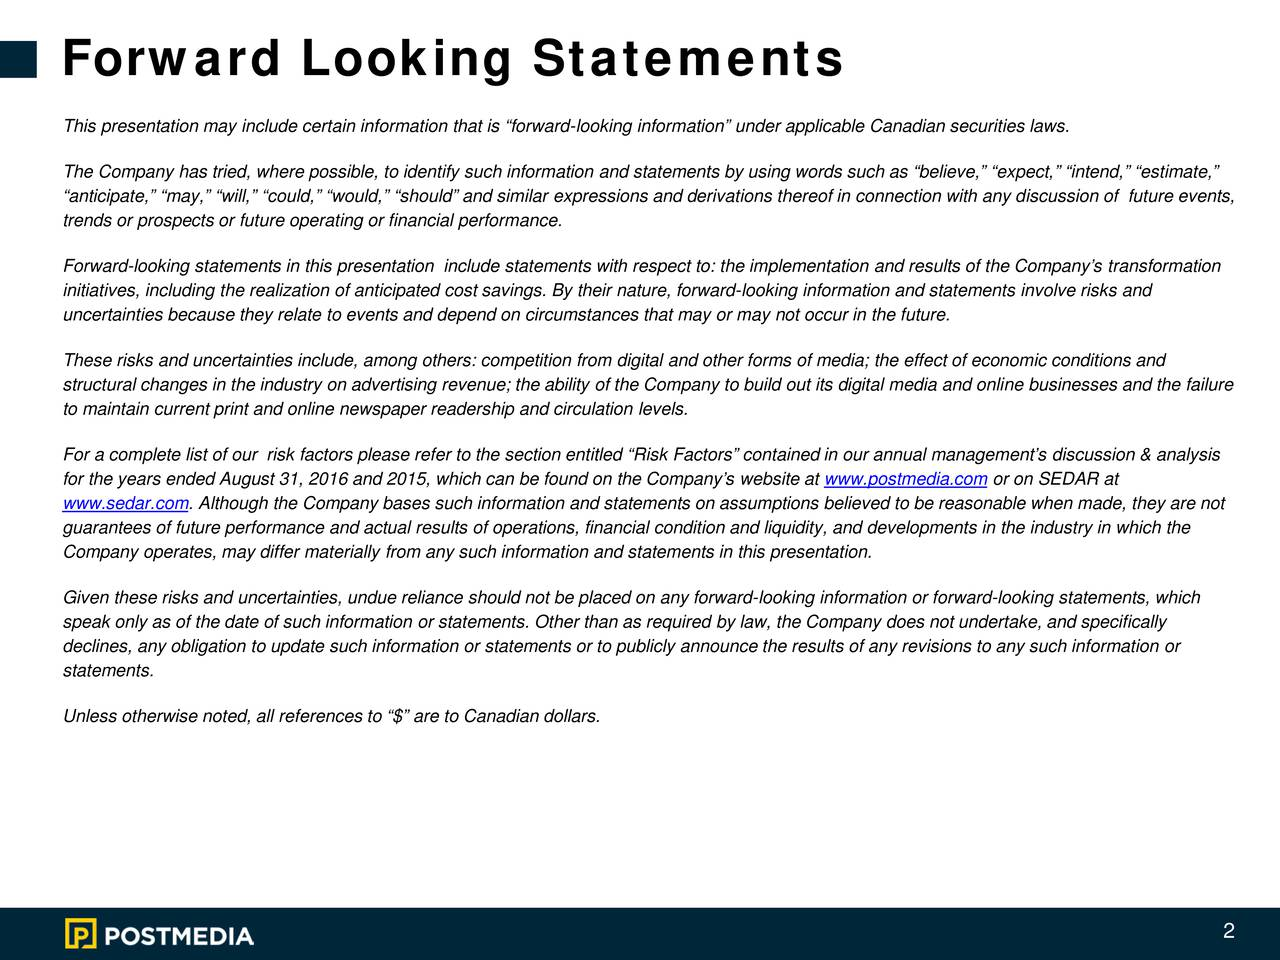 This presentation may include certain information that is forward-looking information under applicable Canadian securities laws. The Company has tried, where possible, to identify such information and statements by using words such as believe, expect, intend, estimate, anticipate, may, will, could, would, should and similar expressions and derivations thereof in conniscussion of future events, trends or prospects or future operating or financial performance. Forward-looking statements in this presentation include statements with respect to:the implementation and results of the Companys transformation initiatives, including the realization of anticipated cost savings. By their nature, forward-looking information and statements involve risks and uncertainties because they relate to events and depend on circumstances that may or may not occur in the future. These risks and uncertainties include, among others: competition from digital and other forms of media; the effect of economic conditions and structural changes in the industry on advertising revenue; the ability of the Company to build out its digital media and online businesses and the failure to maintain current print and online newspaper readership and circulationlevels. For a complete list of our risk factors please refer to the section entitled Risk Factors contained in our annual managements discussion & analysis for the years ended August 31, 2016 and 2015, which can be found on the Companys website atwww.postmedia.com or on SEDAR at www.sedar.com. Although the Company bases such information and statements on assumptions believed to be reasonable when made, they are not guarantees of future performance and actual results of operations, financial condition and liquidity, and developments in theindustry in which the Company operates, may differ materially from any such information and statements in this presentation. Given these risks and uncertainties, undue reliance should not be placed on any forward-lookin